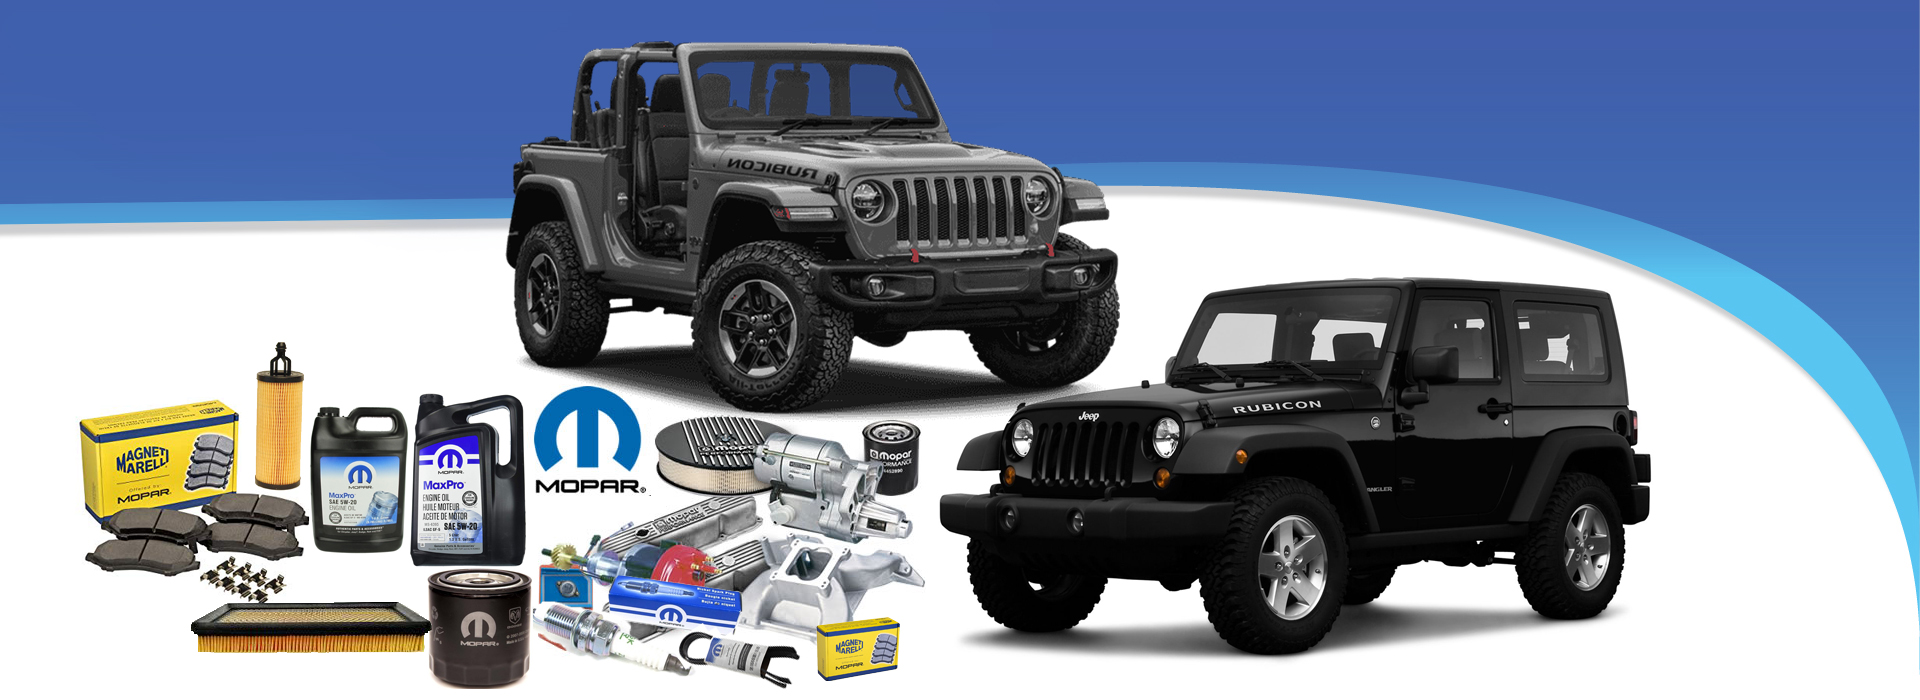 Auto Spare Parts In Sharjah